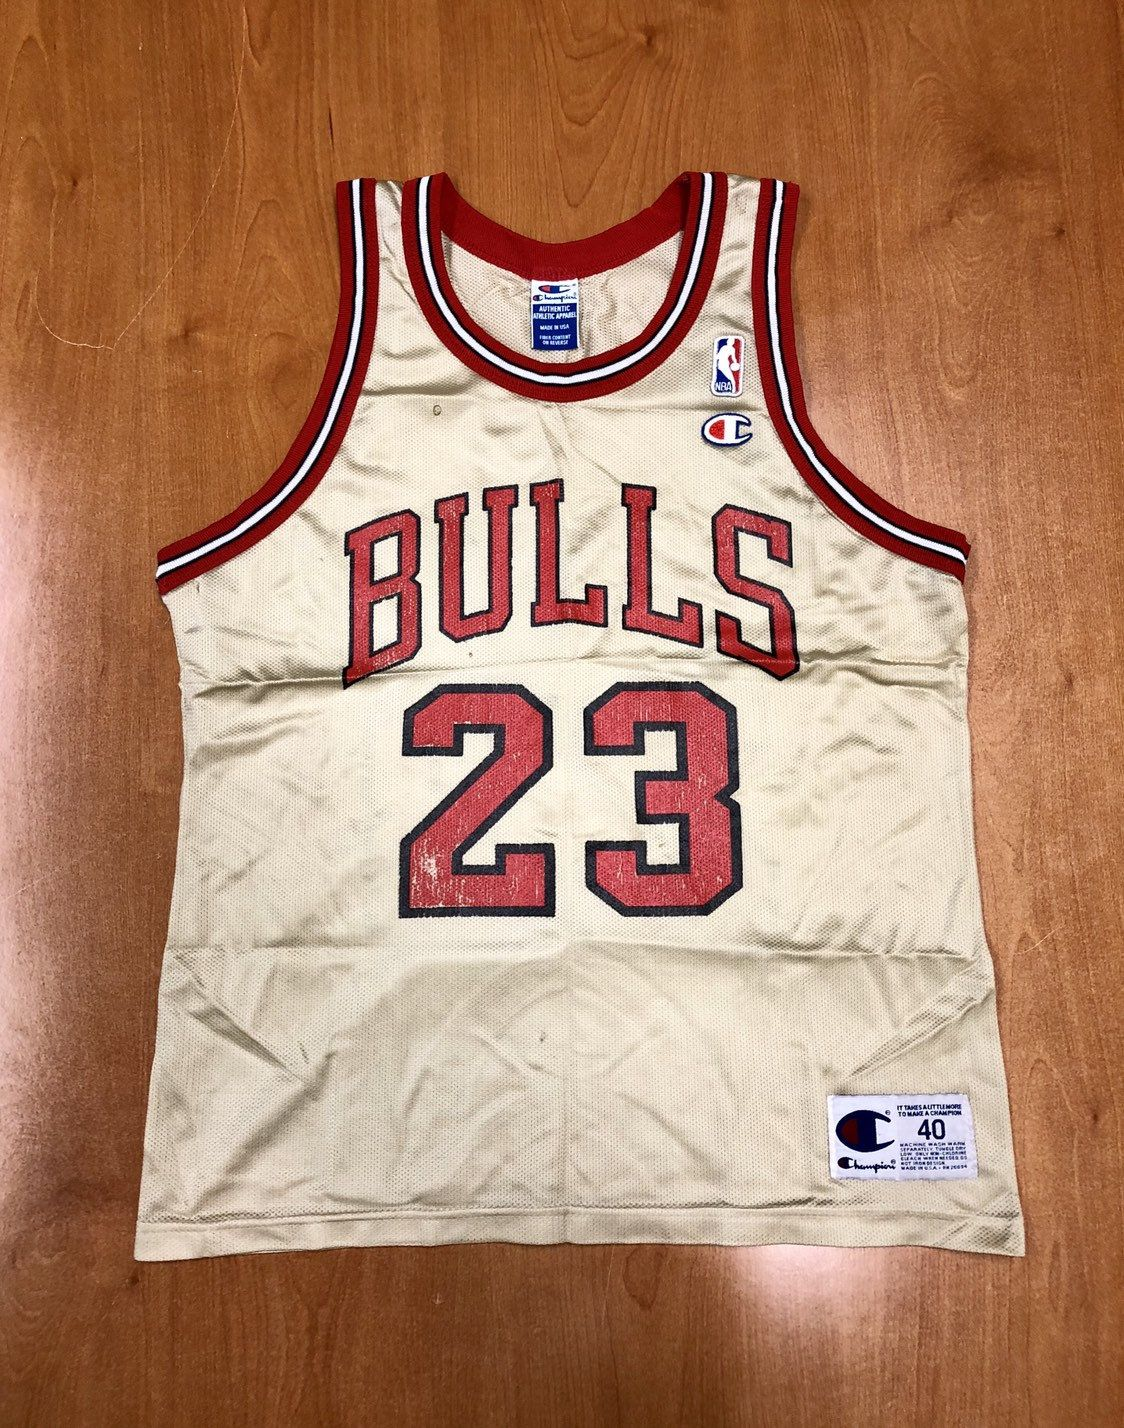 Vintage 1998 Michael Jordan Chicago Bulls Champion Gold Jersey Size 40 nba  finals hat shirt scottie pippen authentic air jumpman 45 by  BroadwayVintageLLC on ... 1dfc3b12b